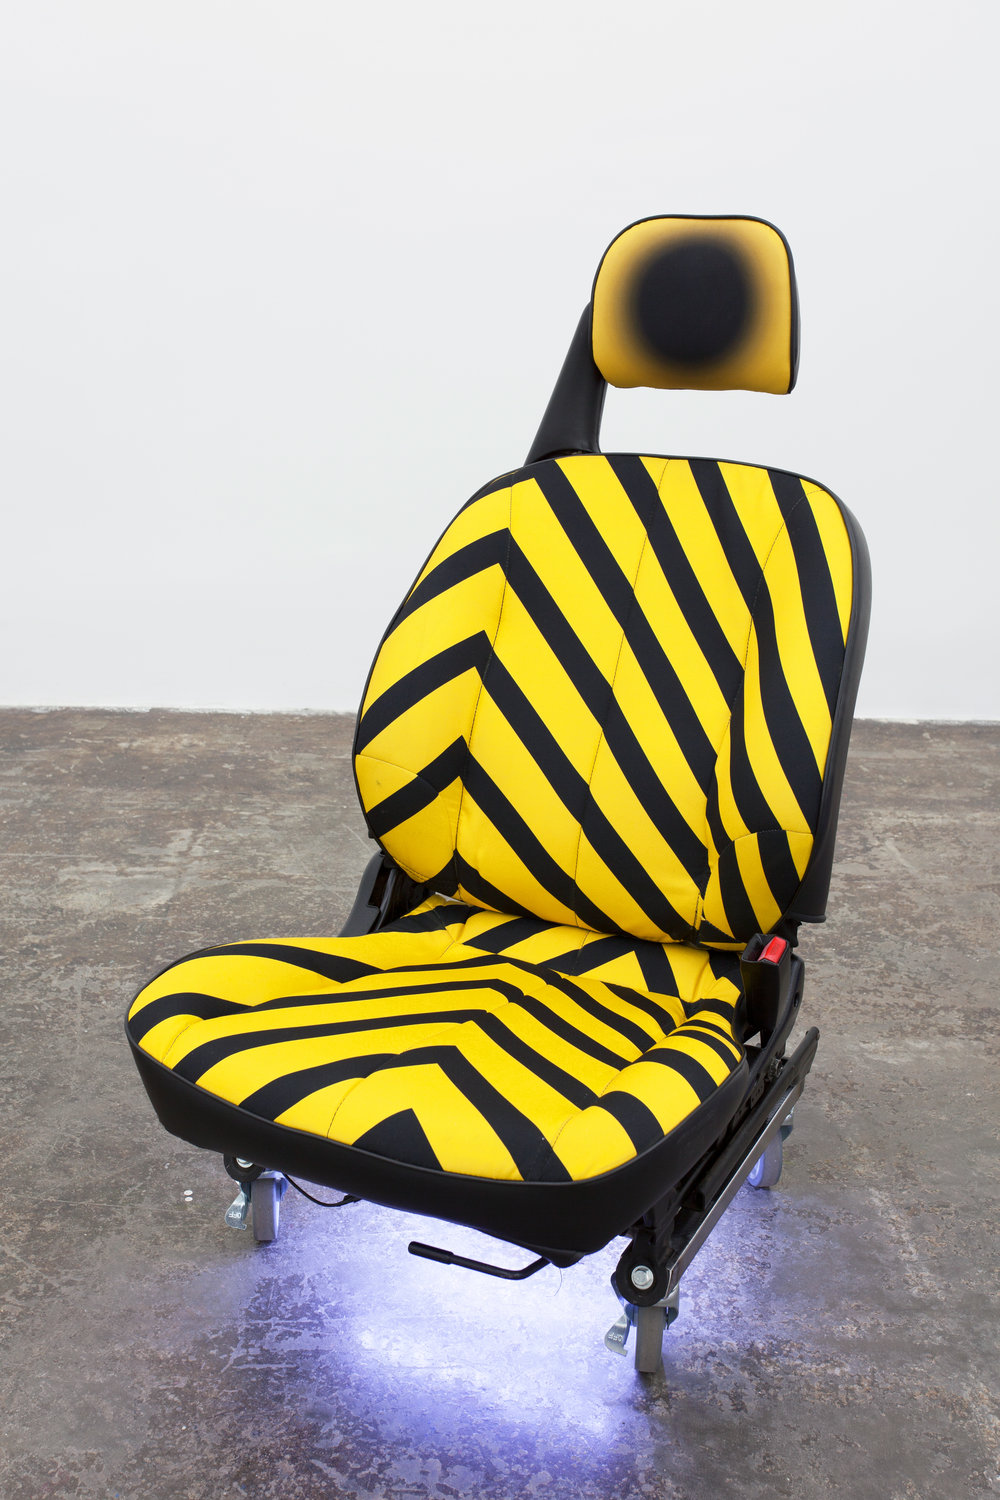 Einzelgänger II (Doppelgänger Yellow) (From the series 'Agents'), 2014